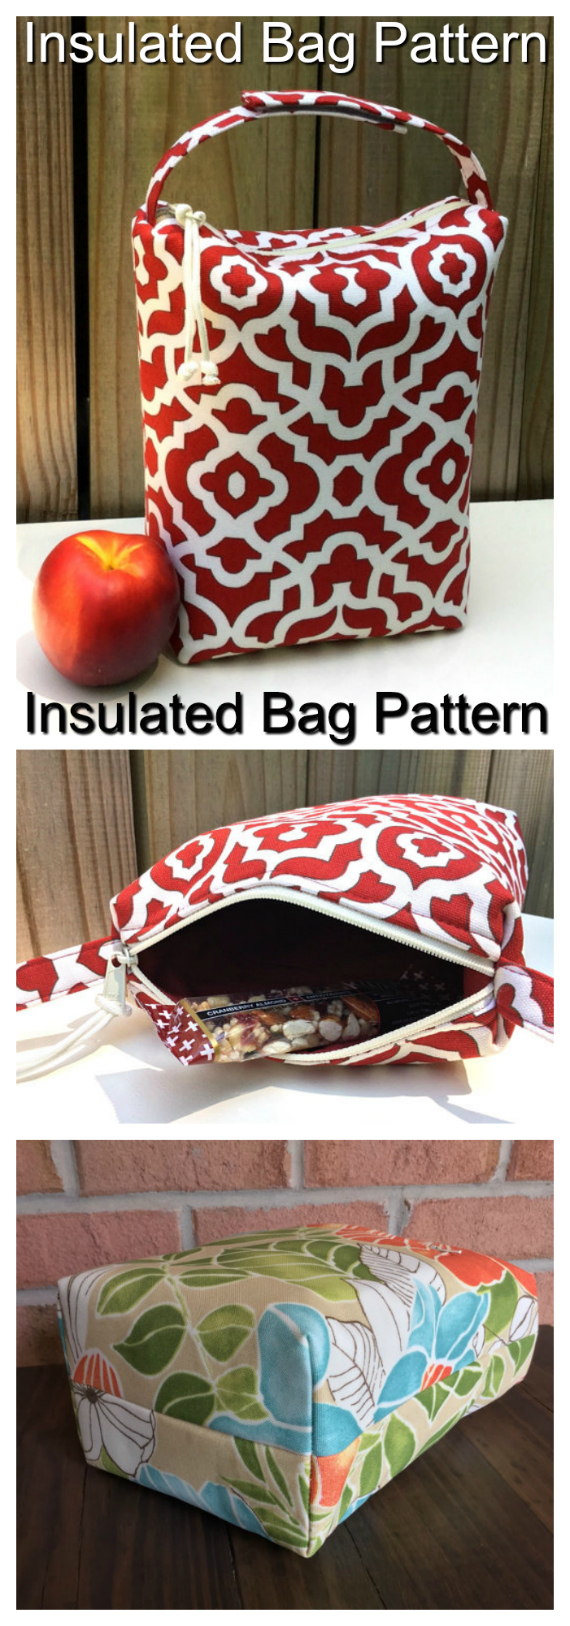 Insulated Lunch Bag sewing pattern.